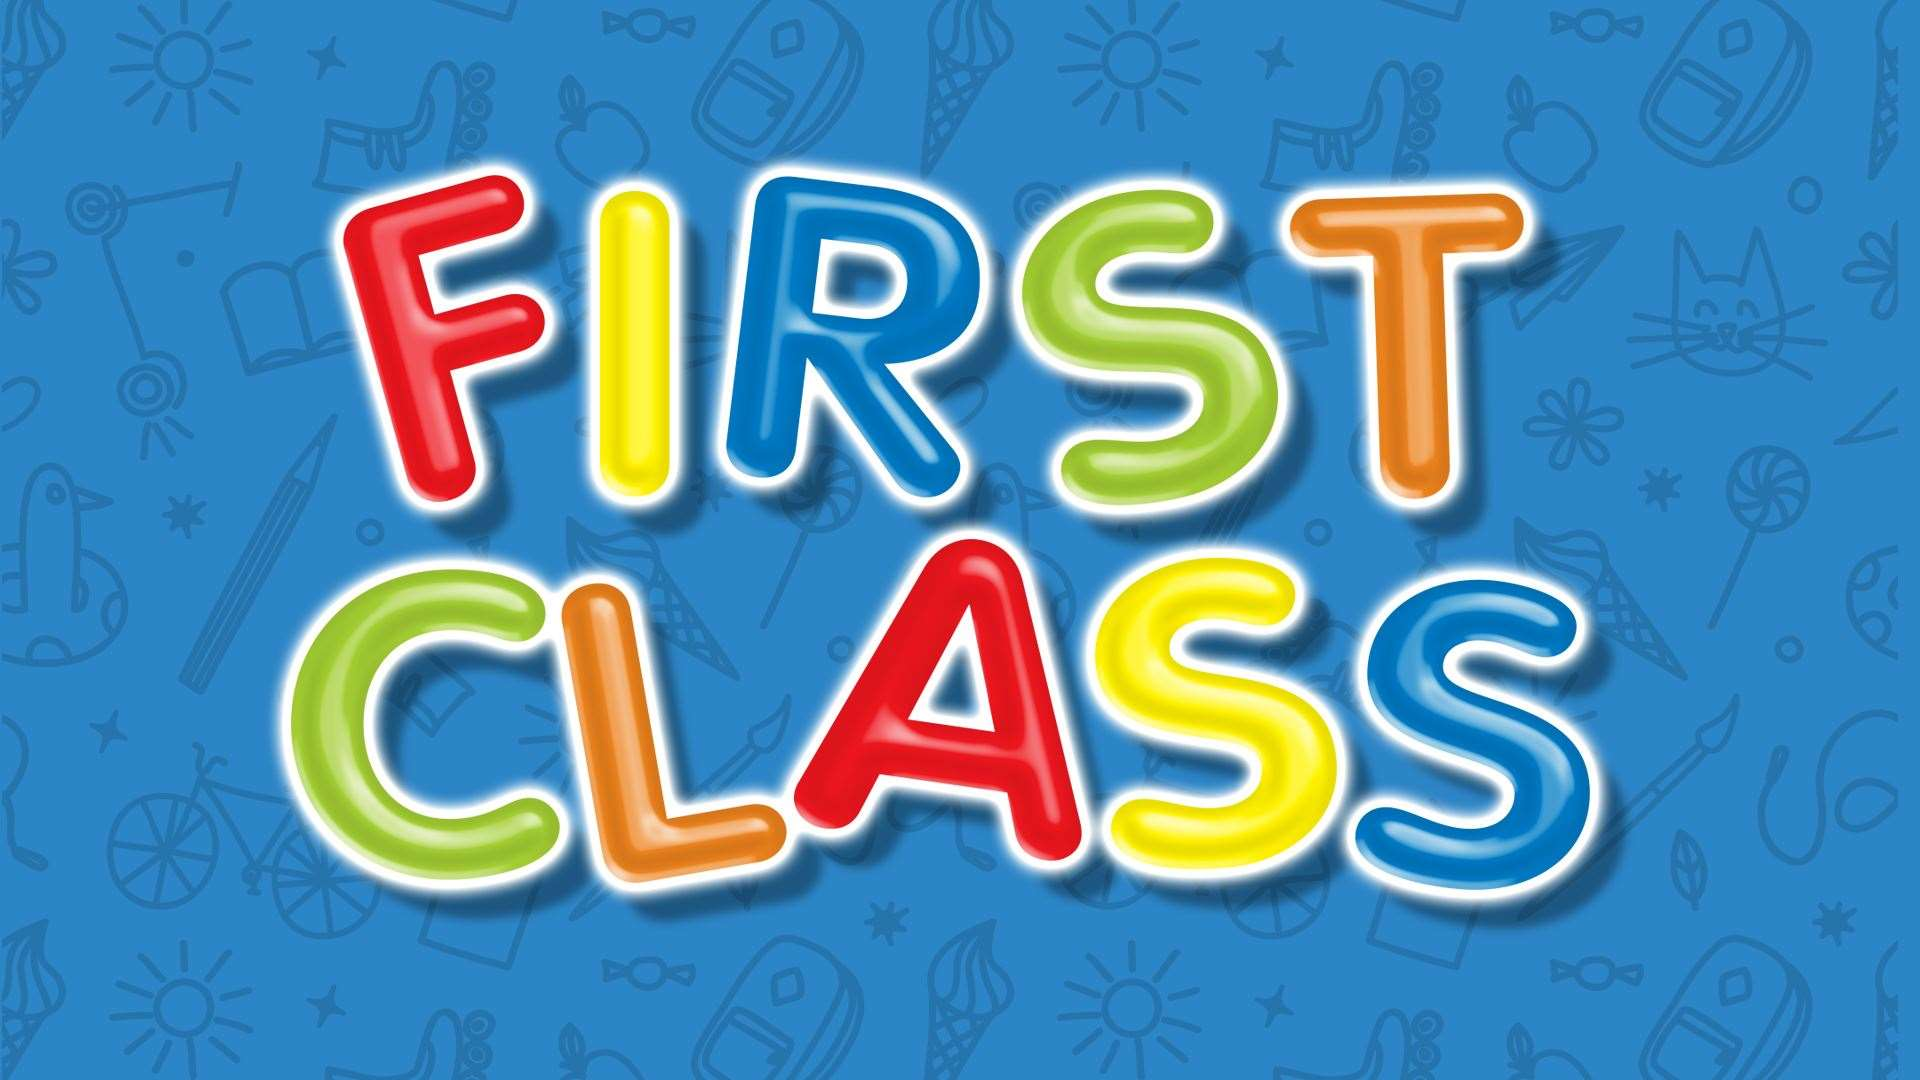 First Class 2019 will be out in October